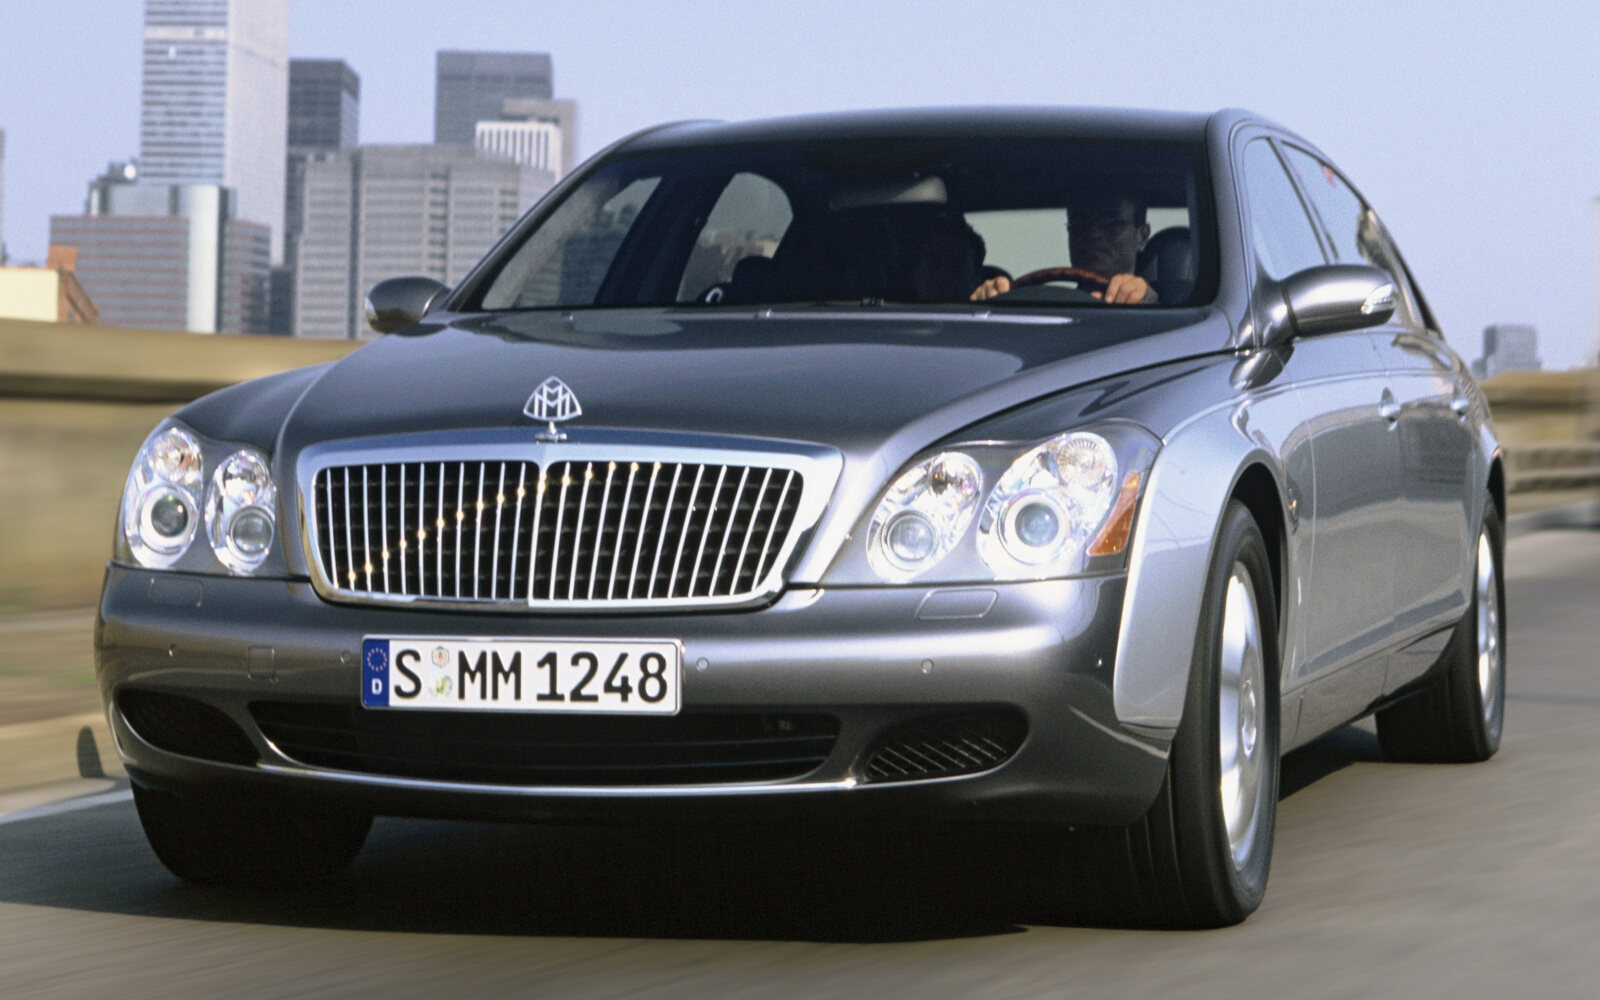 PKW4600020 Maybach 62